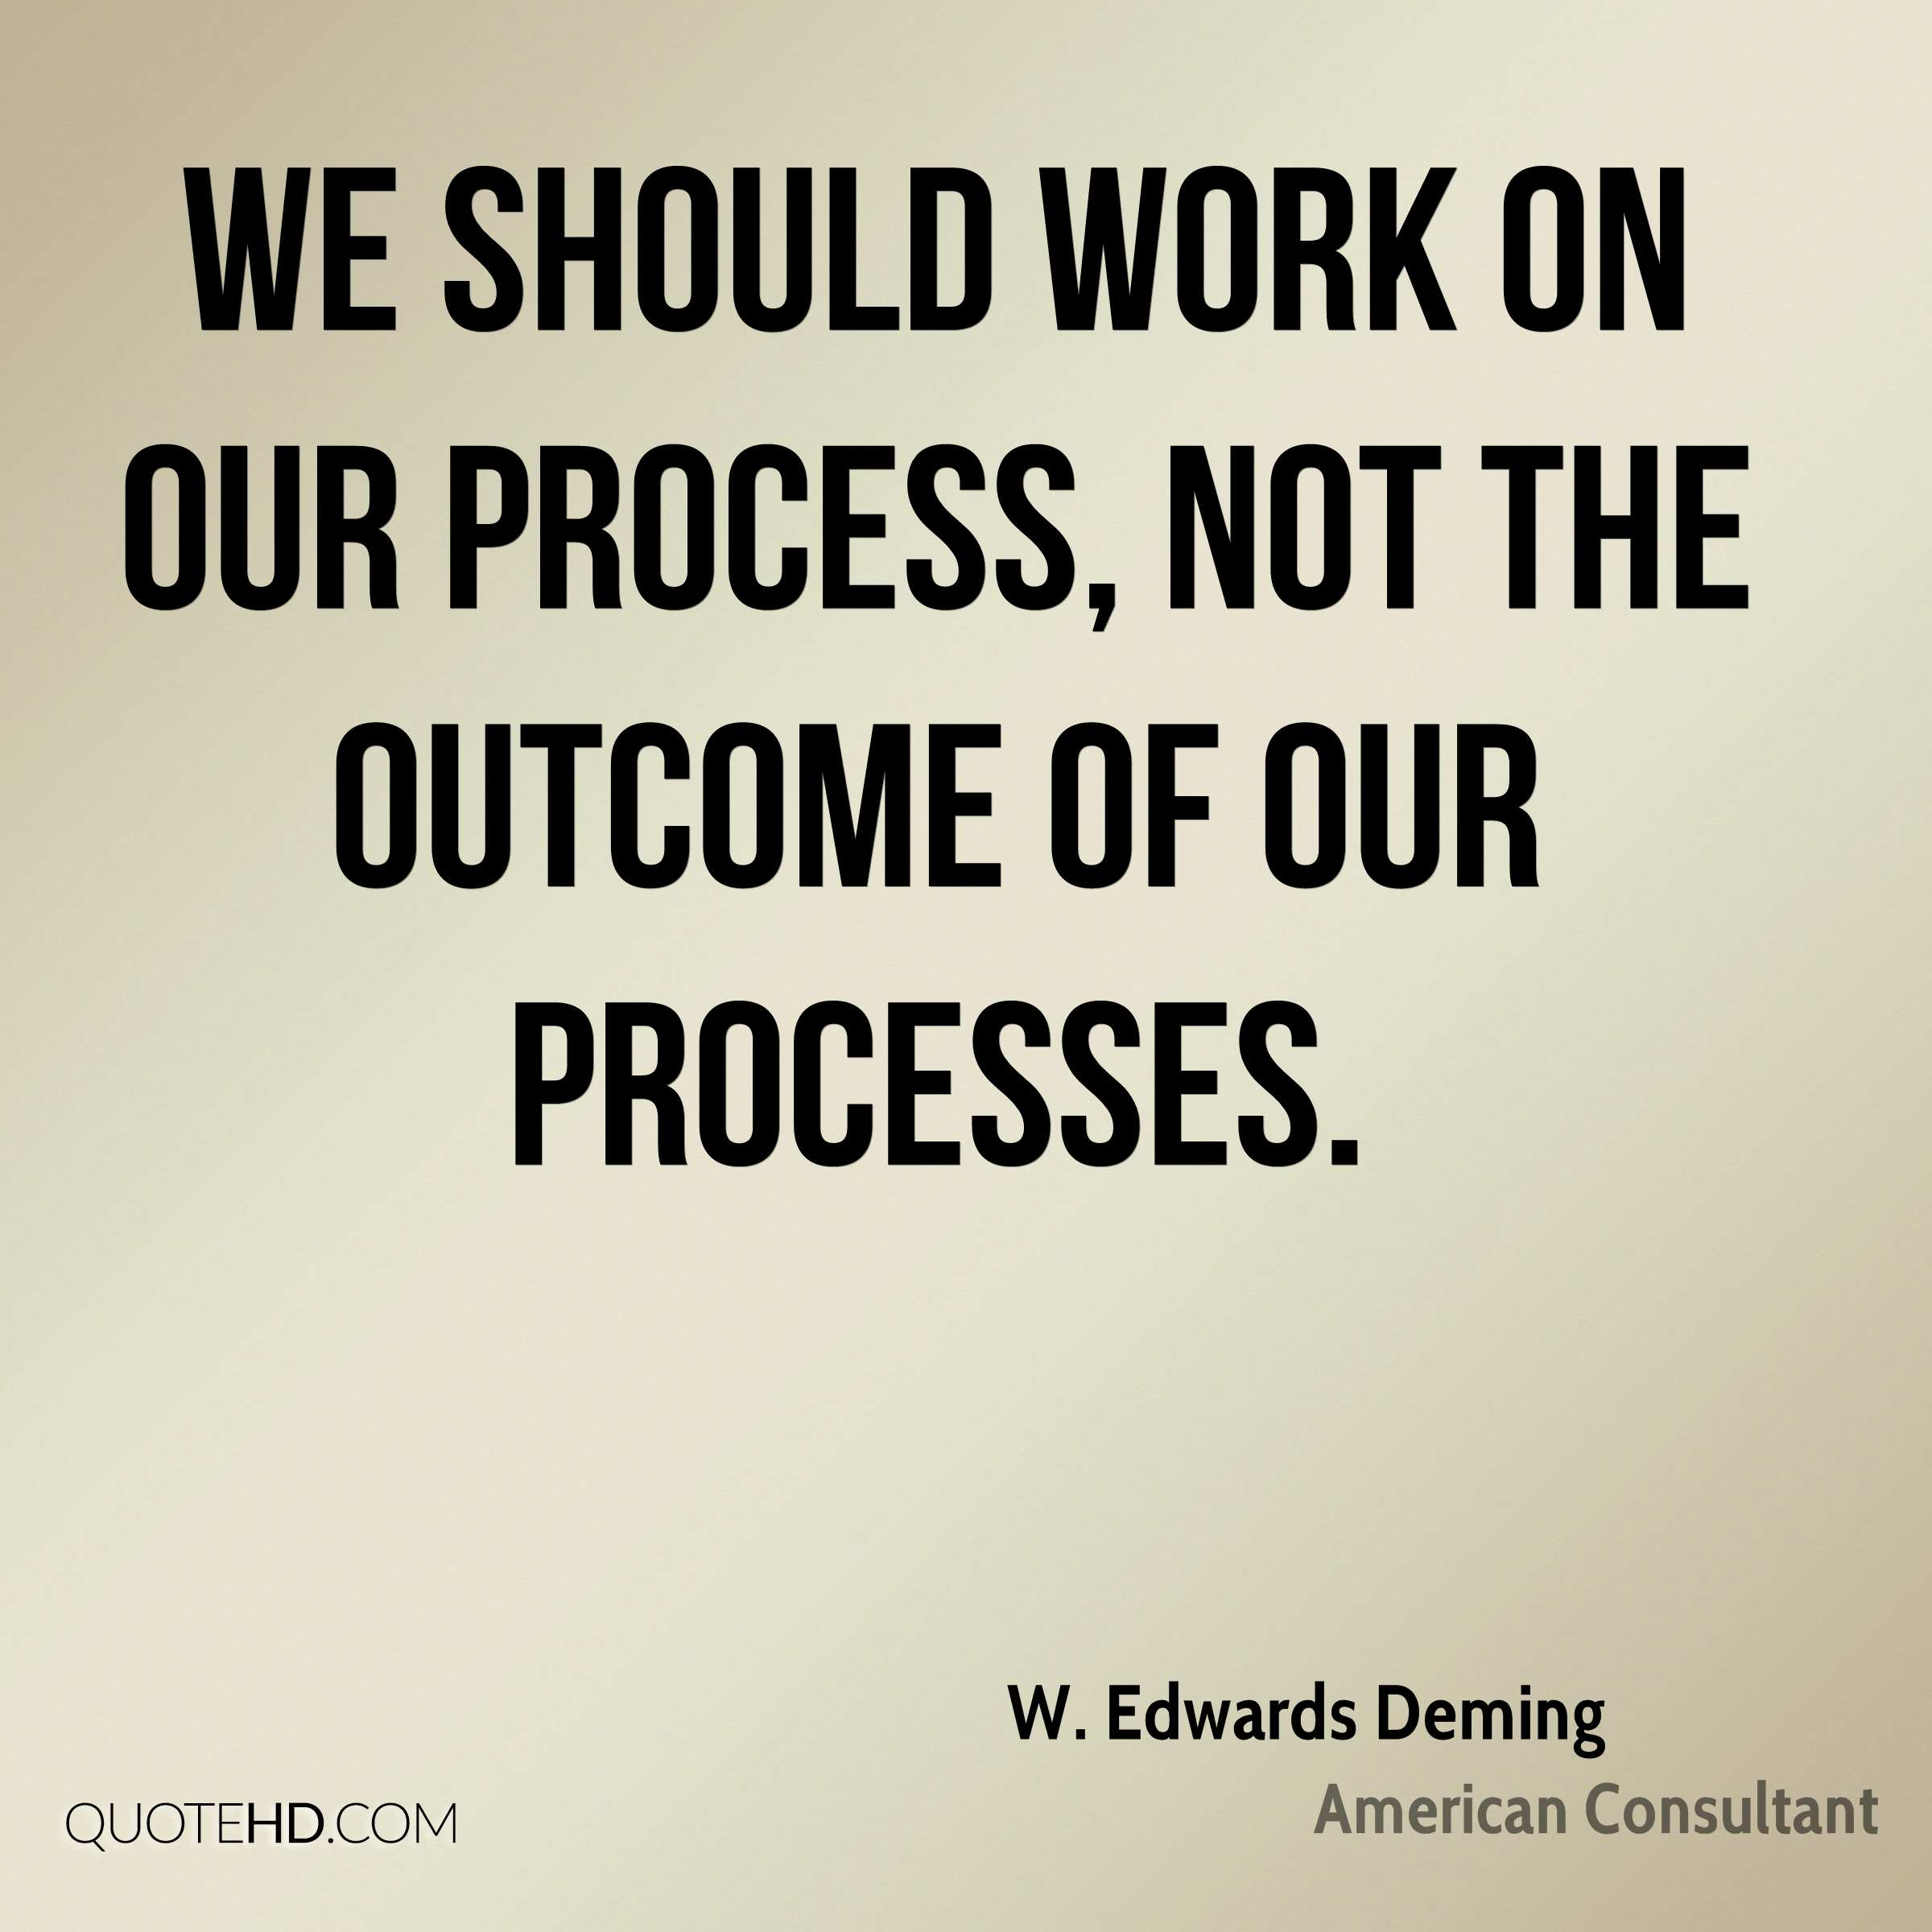 images w quotes  W. Edwards Deming Quotes | QuoteHD